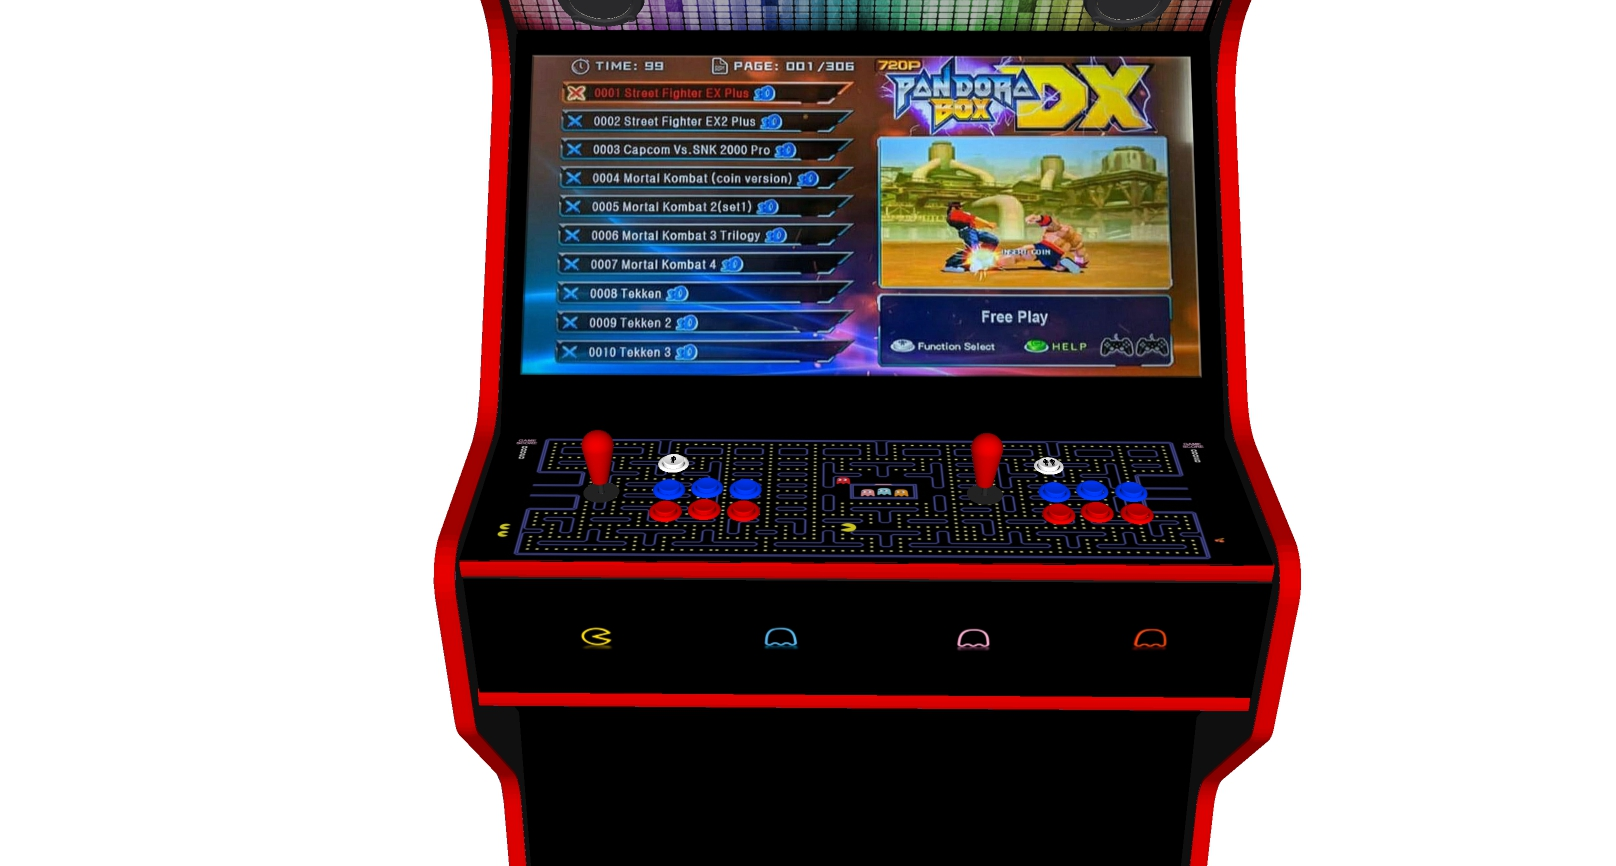 PacMan - 32 Inch Upright Arcade Machine - American Style Joysticks - Red Tmold - centre - 3btns